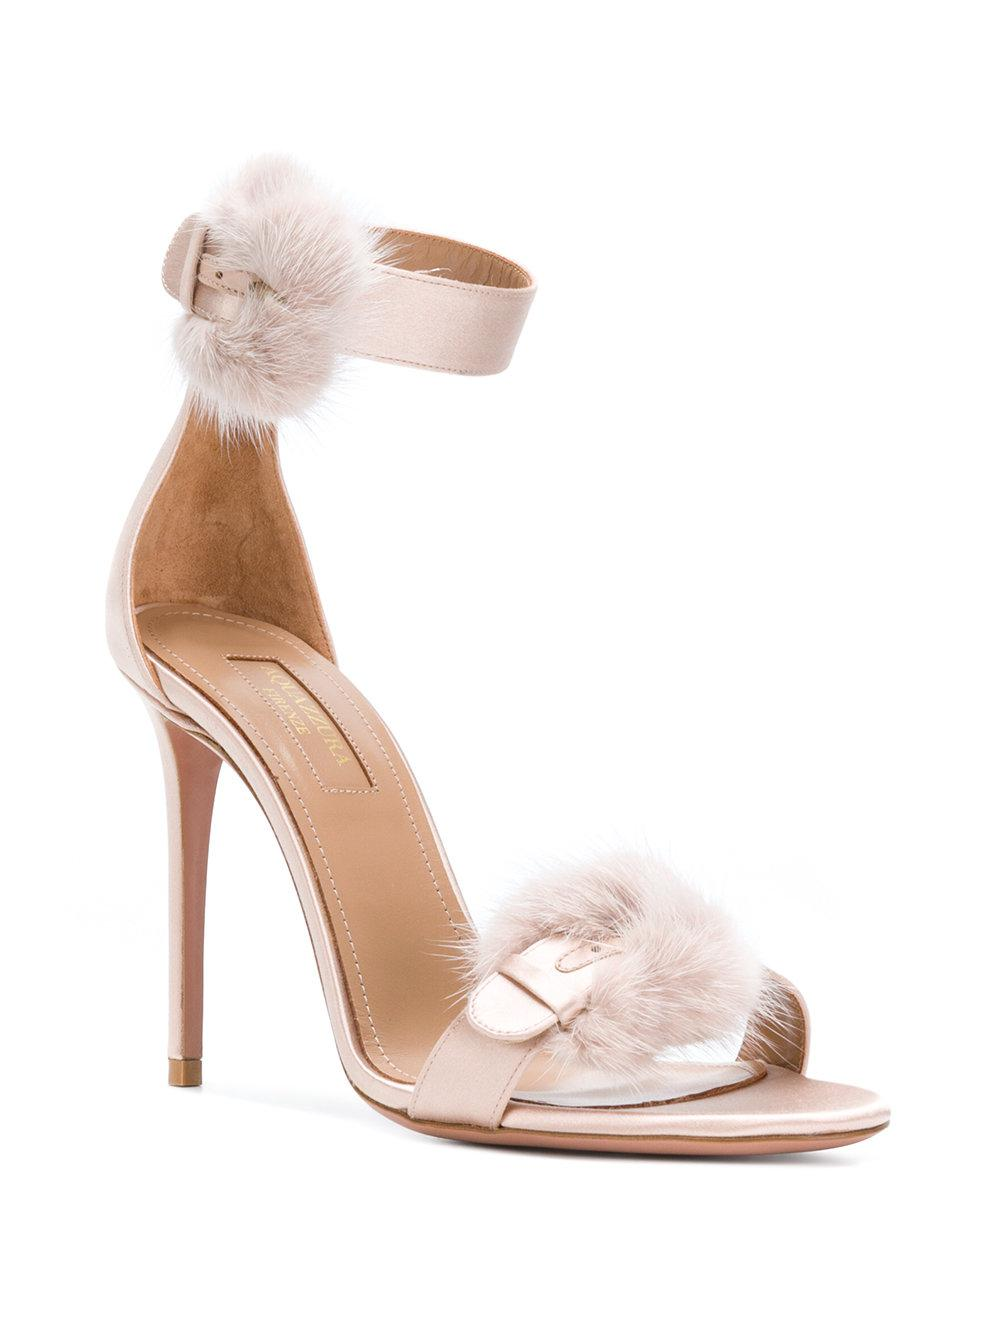 Aquazzura 105MM SINATRA FUR & SATIN SANDALS Wnvz5